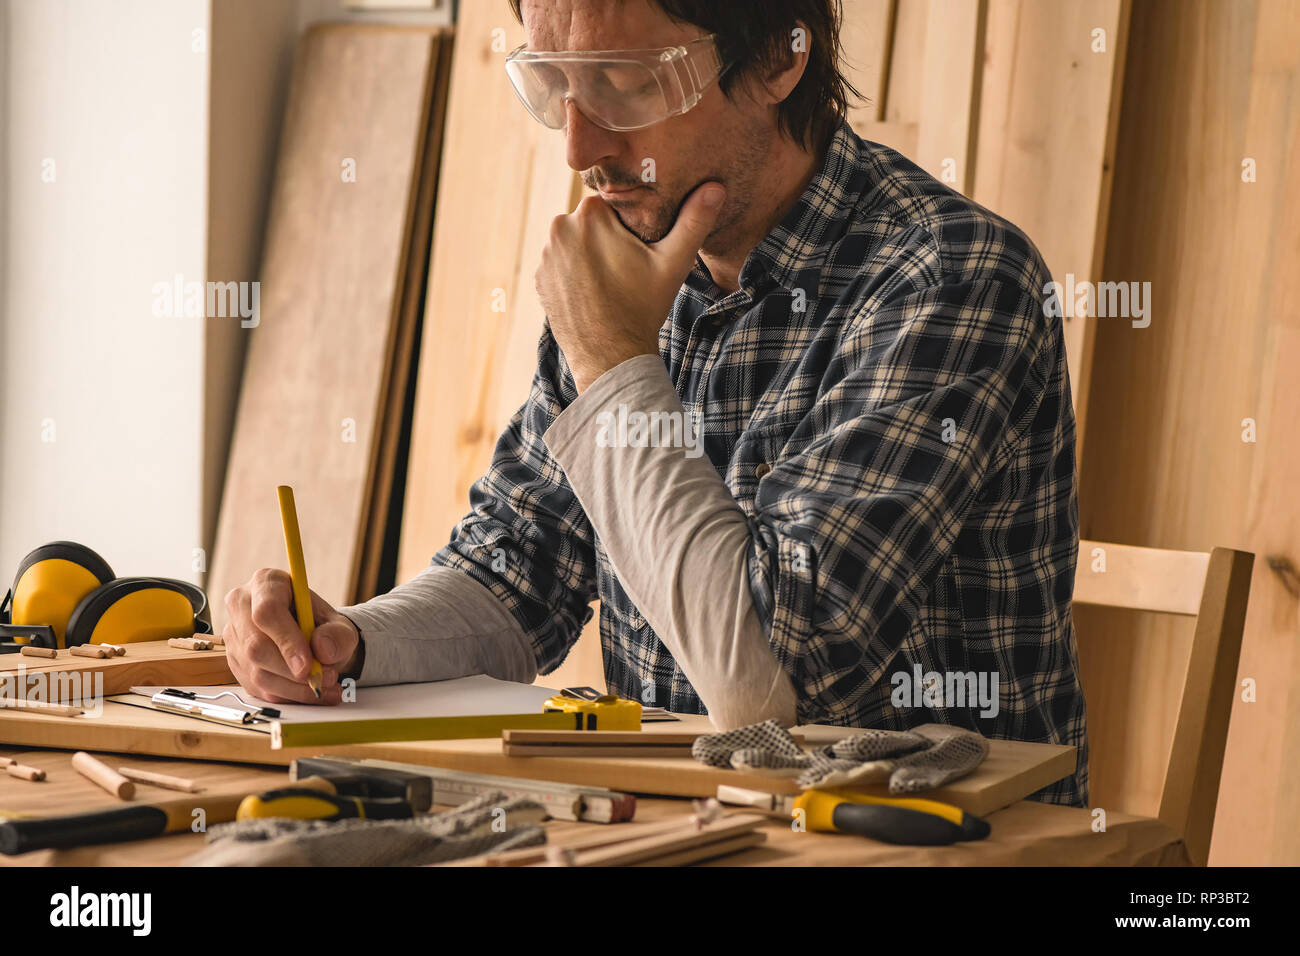 Carpenter planning DIY project in his small business